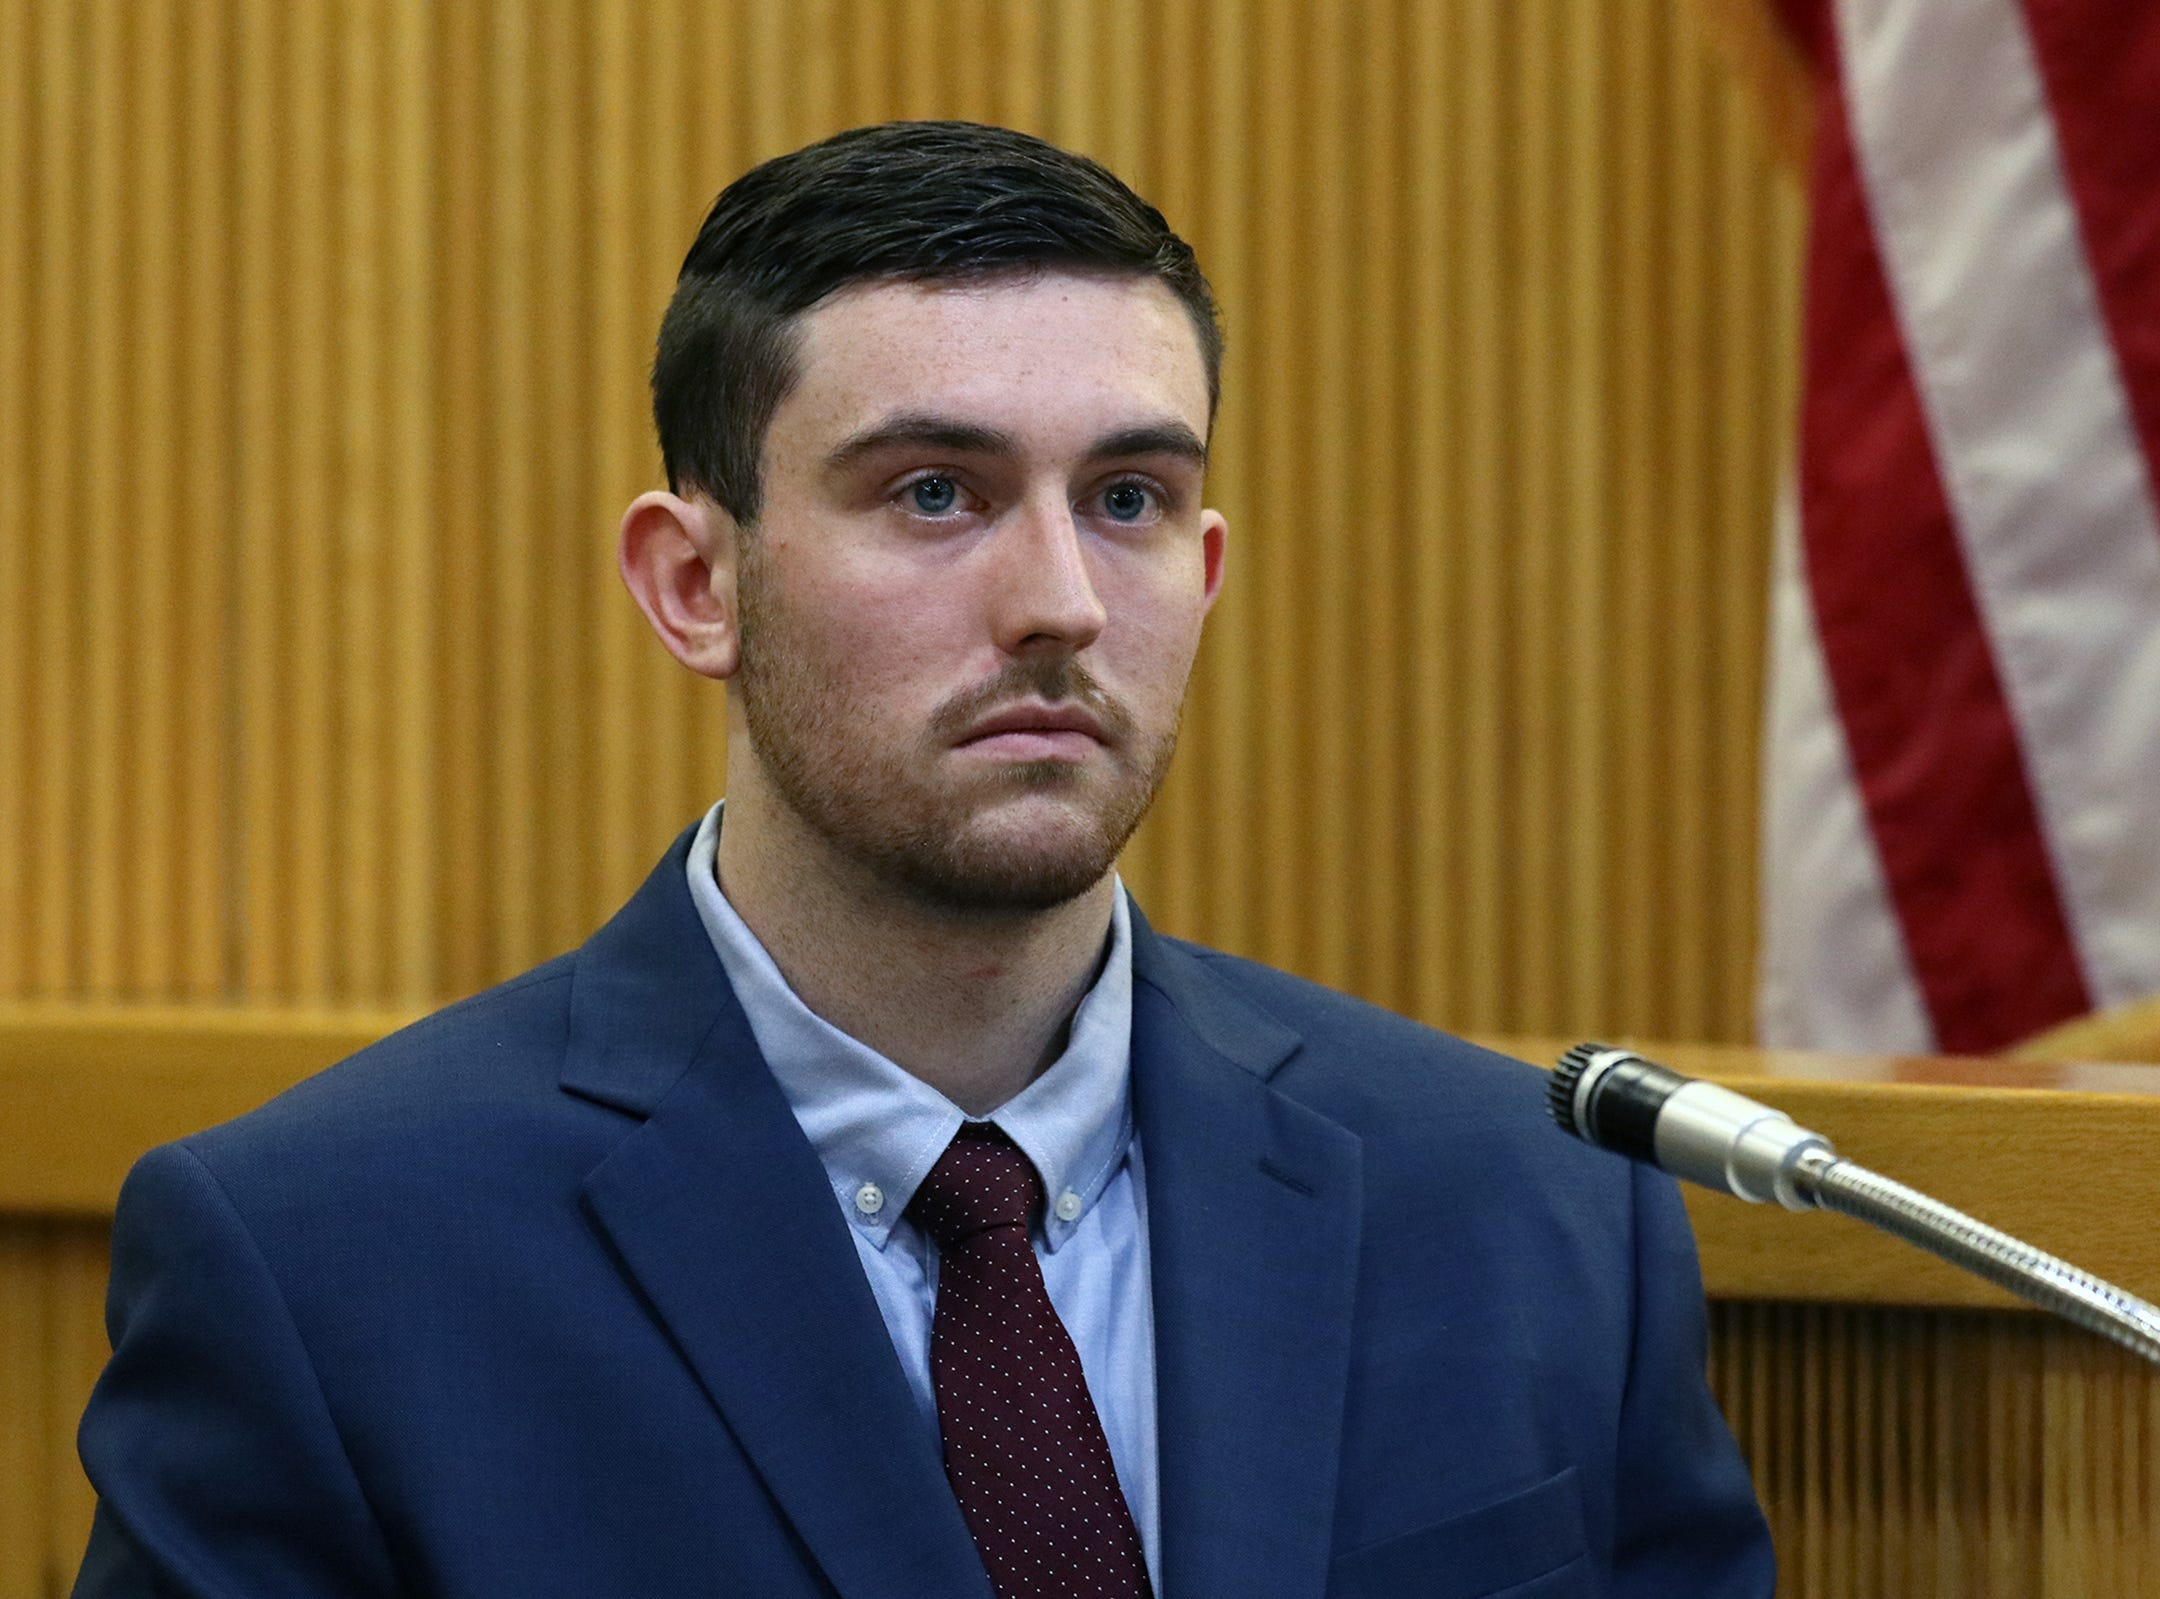 Preston Taylor, who plead guilty to charges in the Sarah Stern case, testifies under a plea agreement against Liam McAtasney, who is charged with the murder of former high school classmate, Sarah Stern, during the second day of trial before Superior Court Judge Richard W. English at the Monmouth County Courthouse in Freehold, NJ Thursday January 24, 2019.